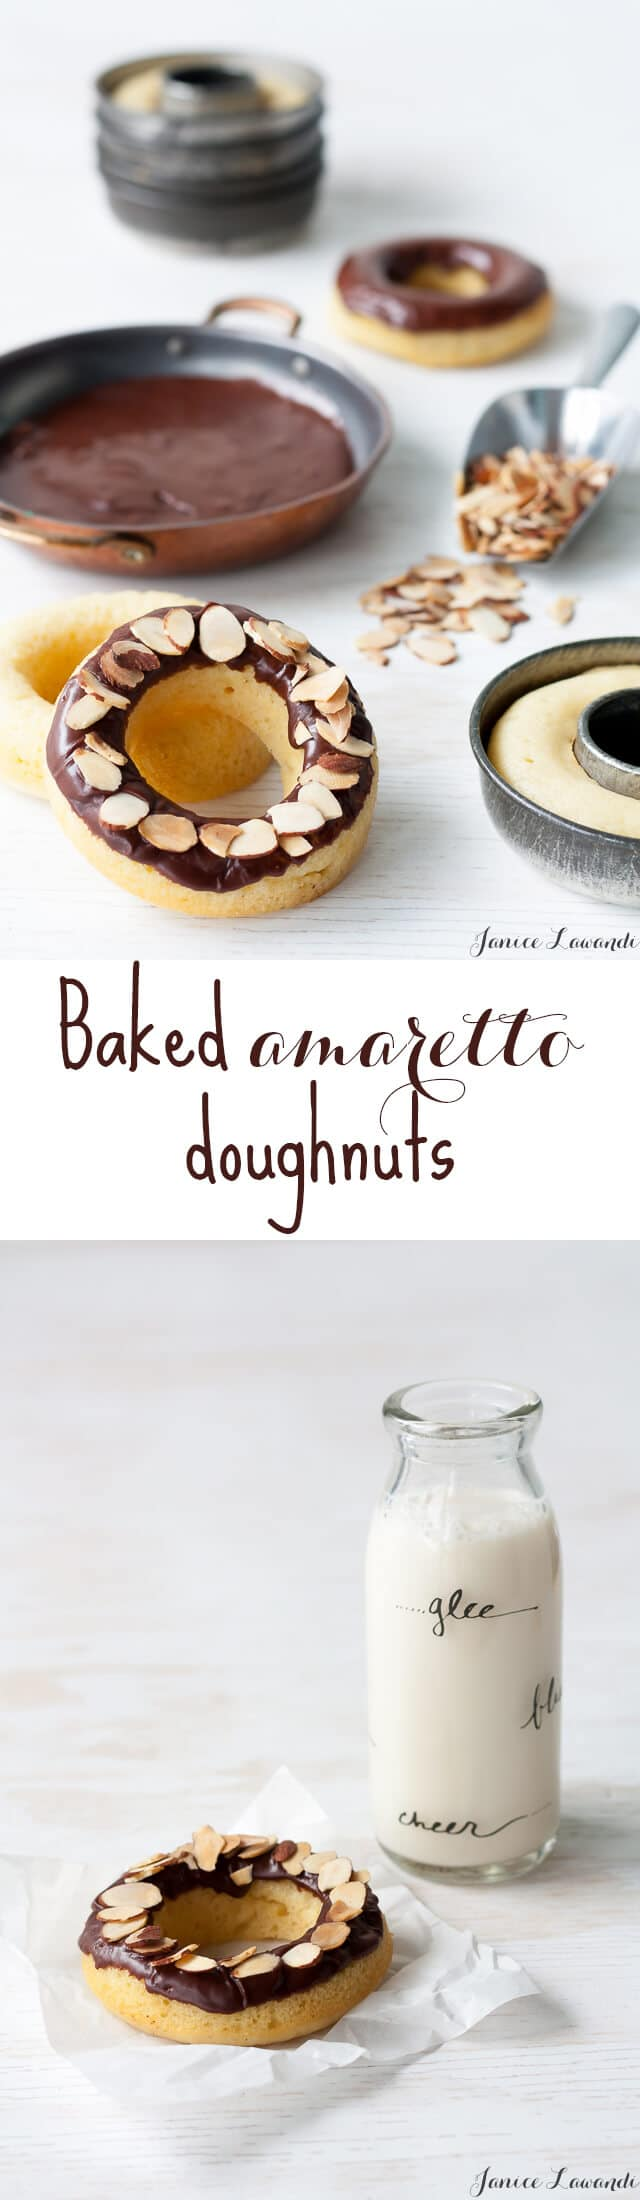 Chocolate-glazed baked amaretto doughnuts made with Almond Breeze